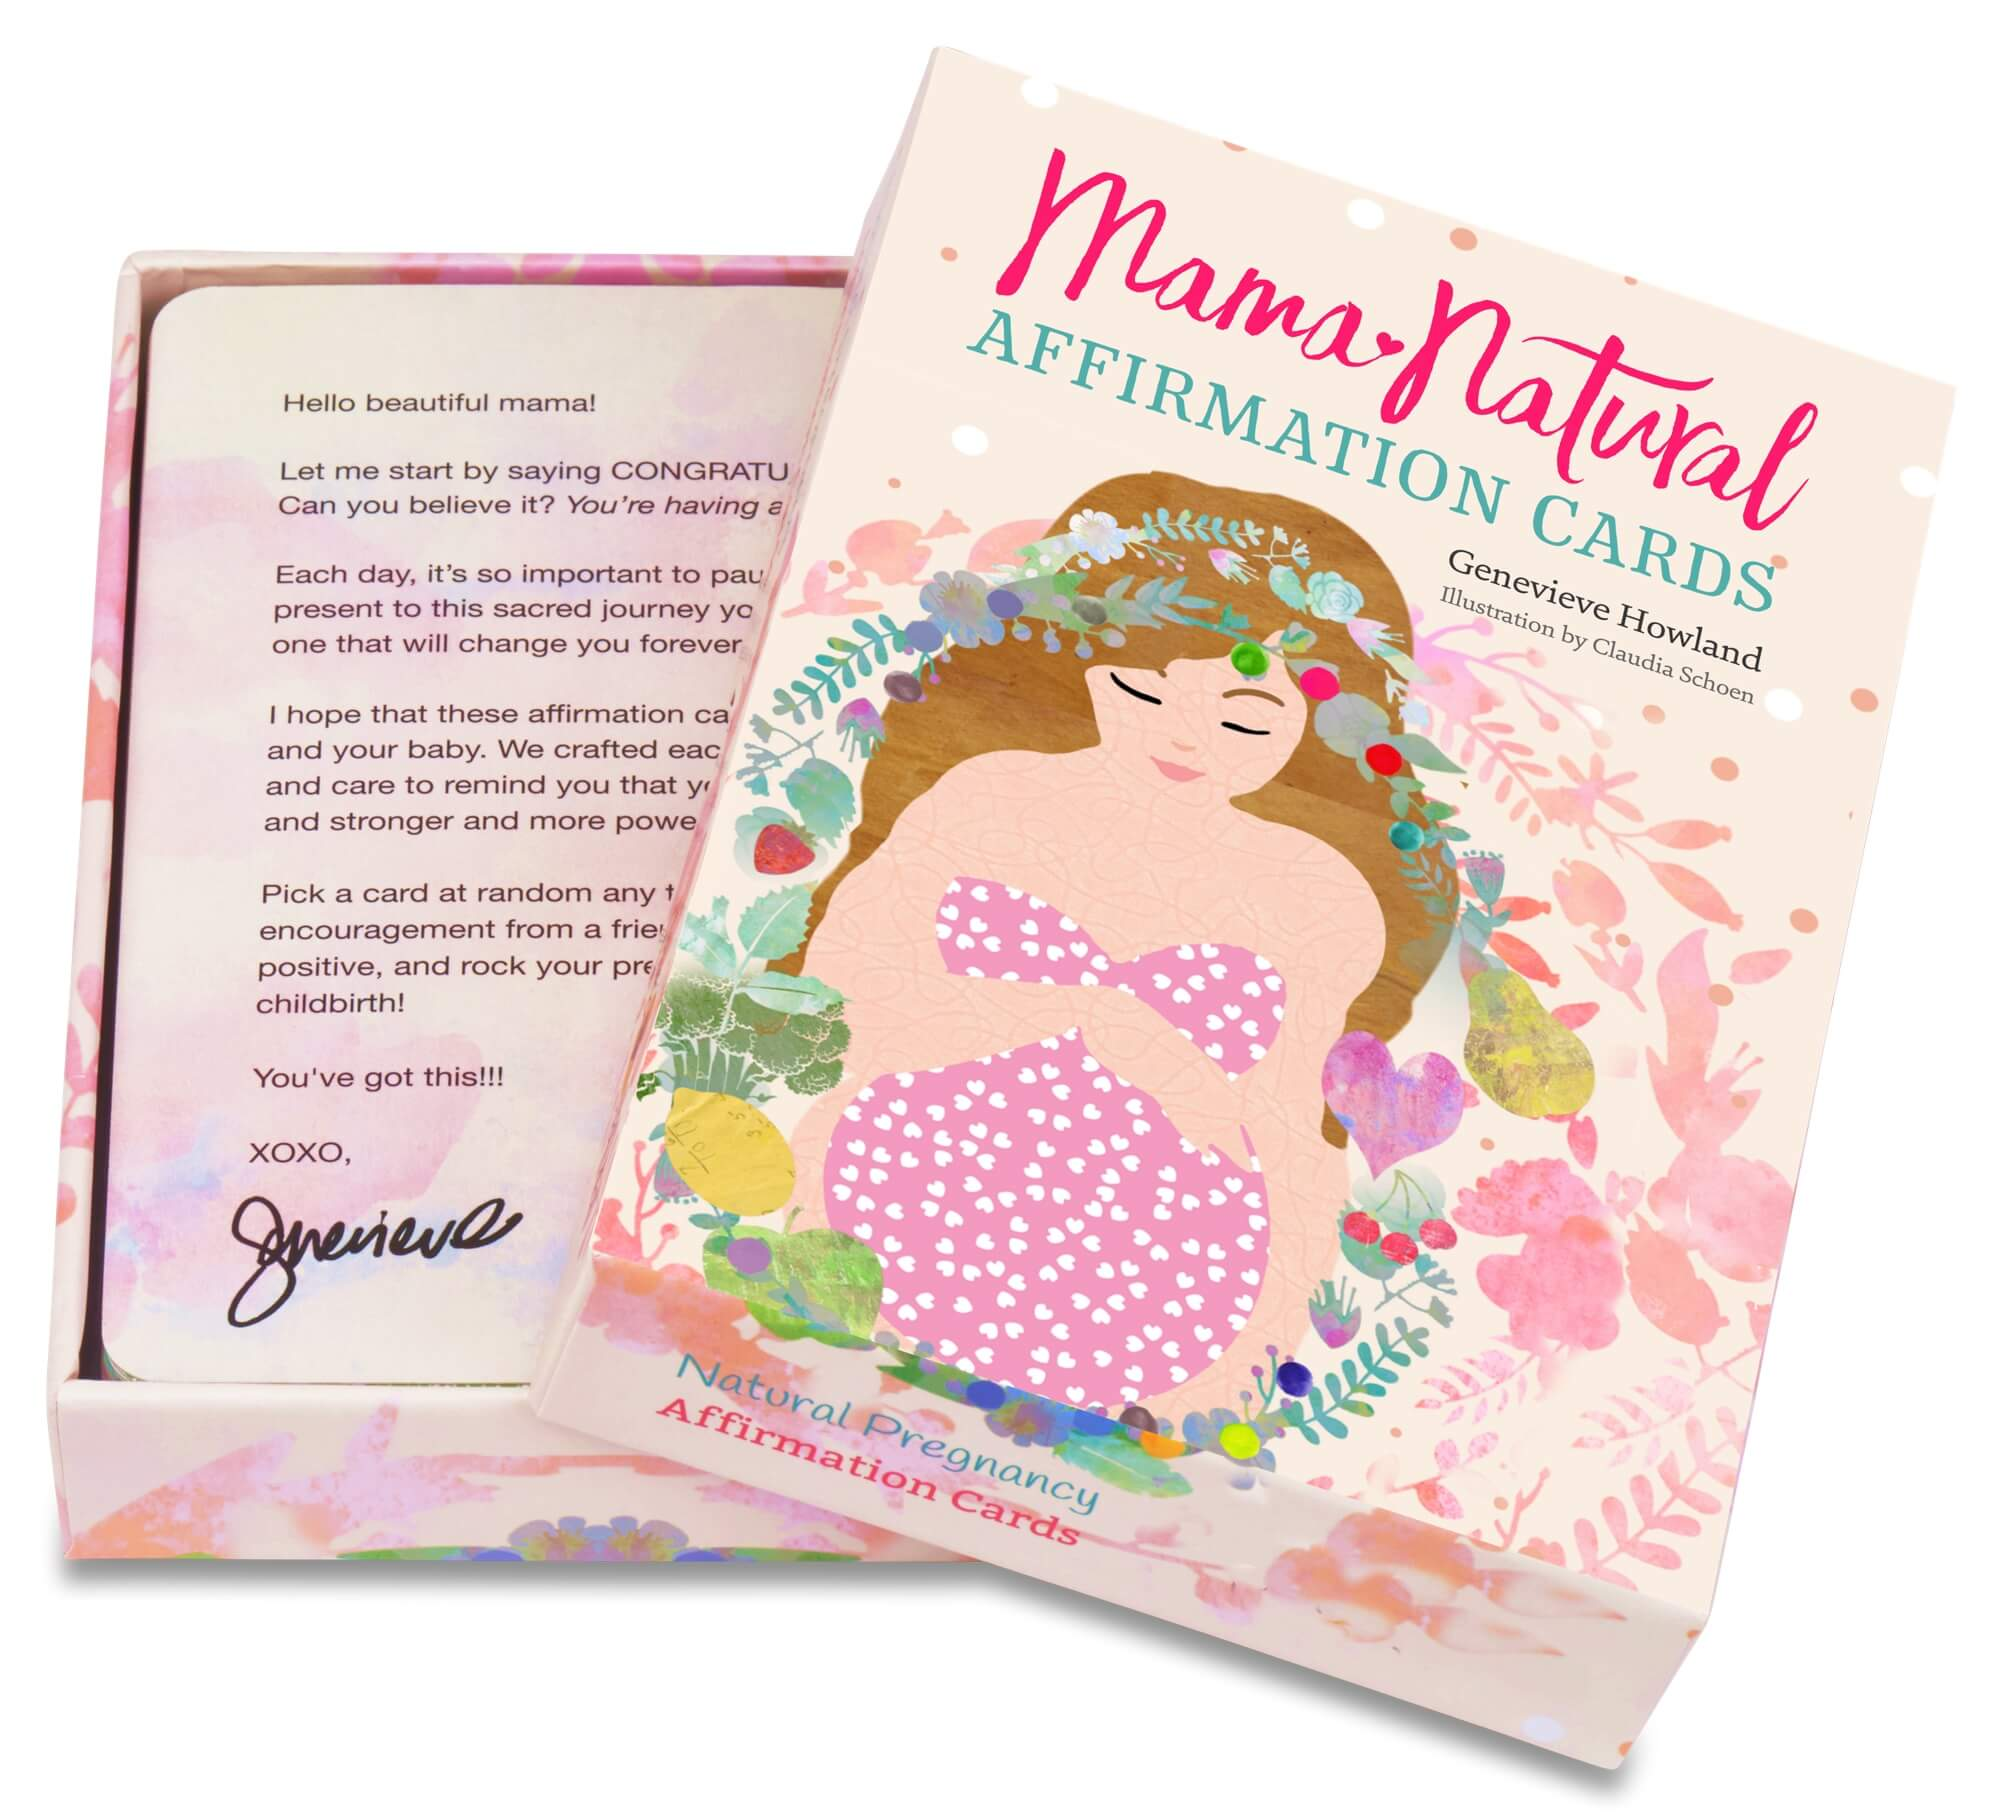 Mama Natural Pregnancy Cards